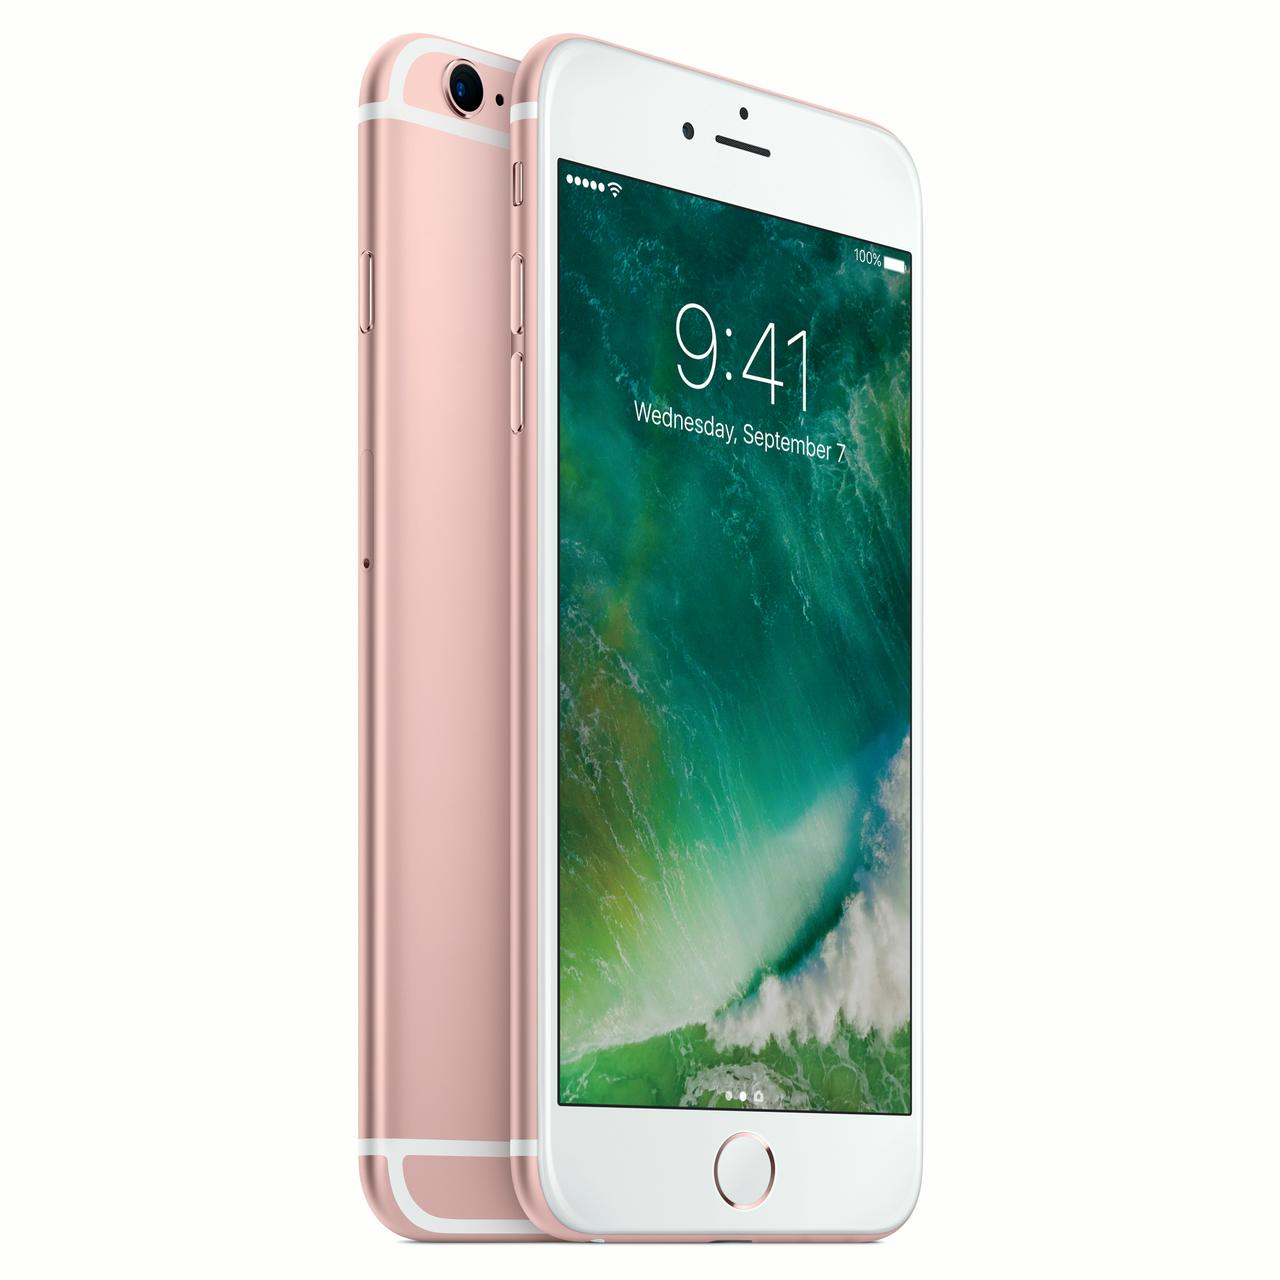 Straight Talk Prepaid Apple iPhone 6s Plus 32GB, Space Gray by Apple